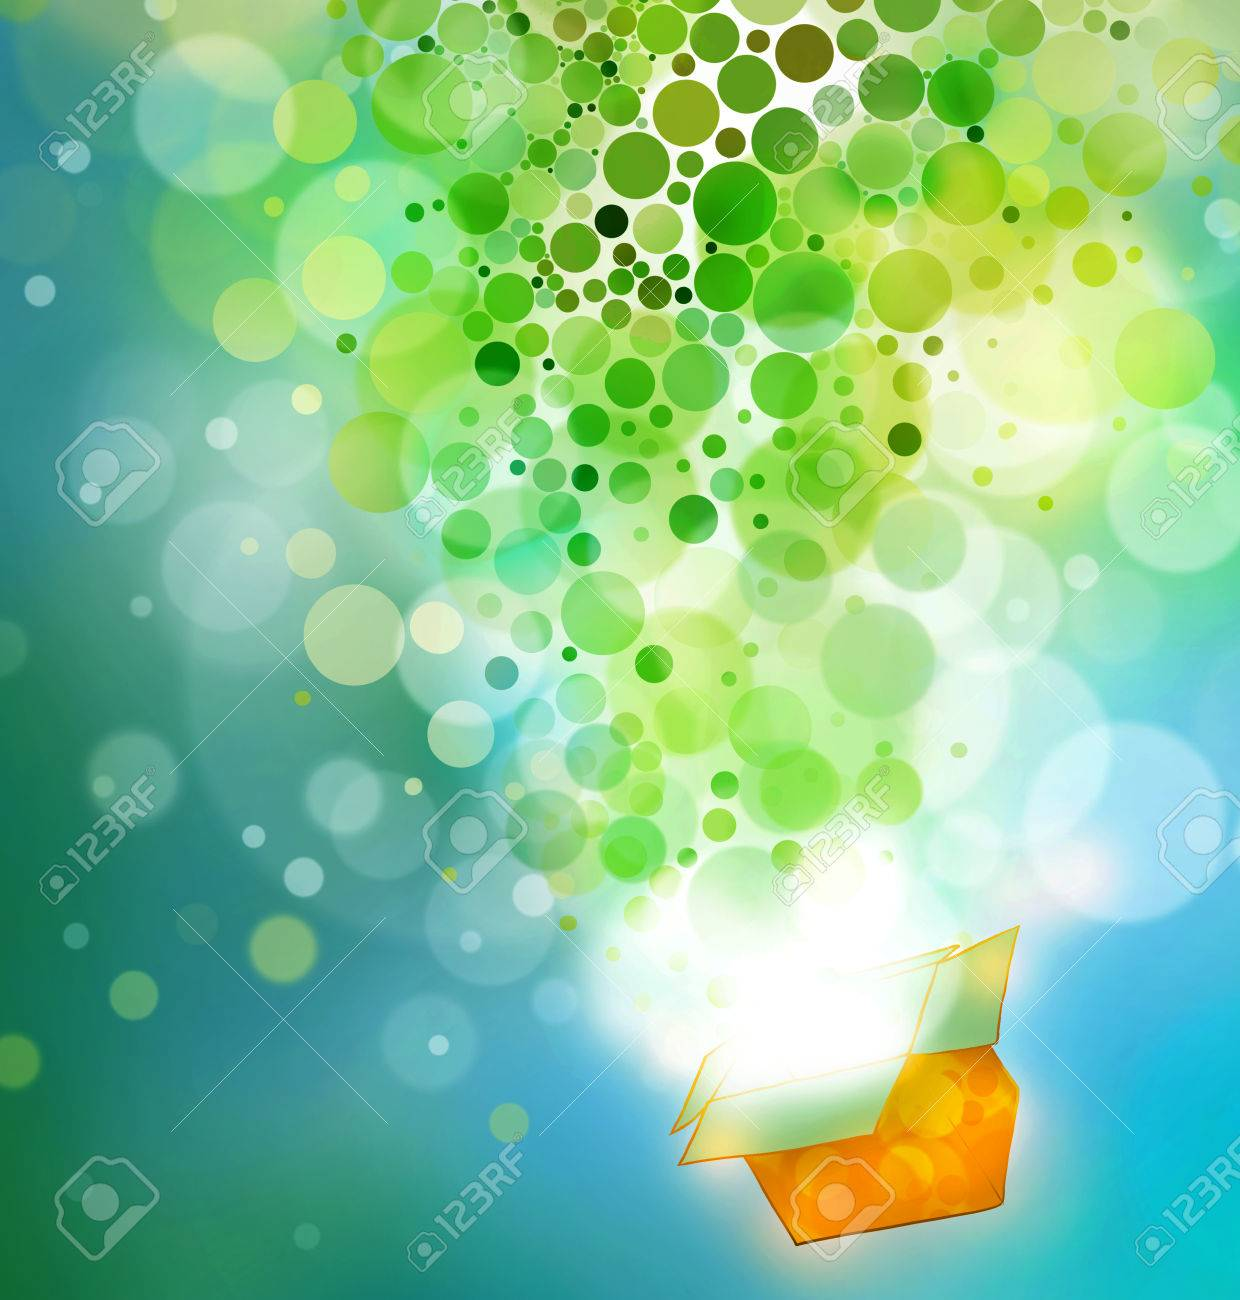 Exploding Gift Box: Abstract Illustration With Circles, Color ...